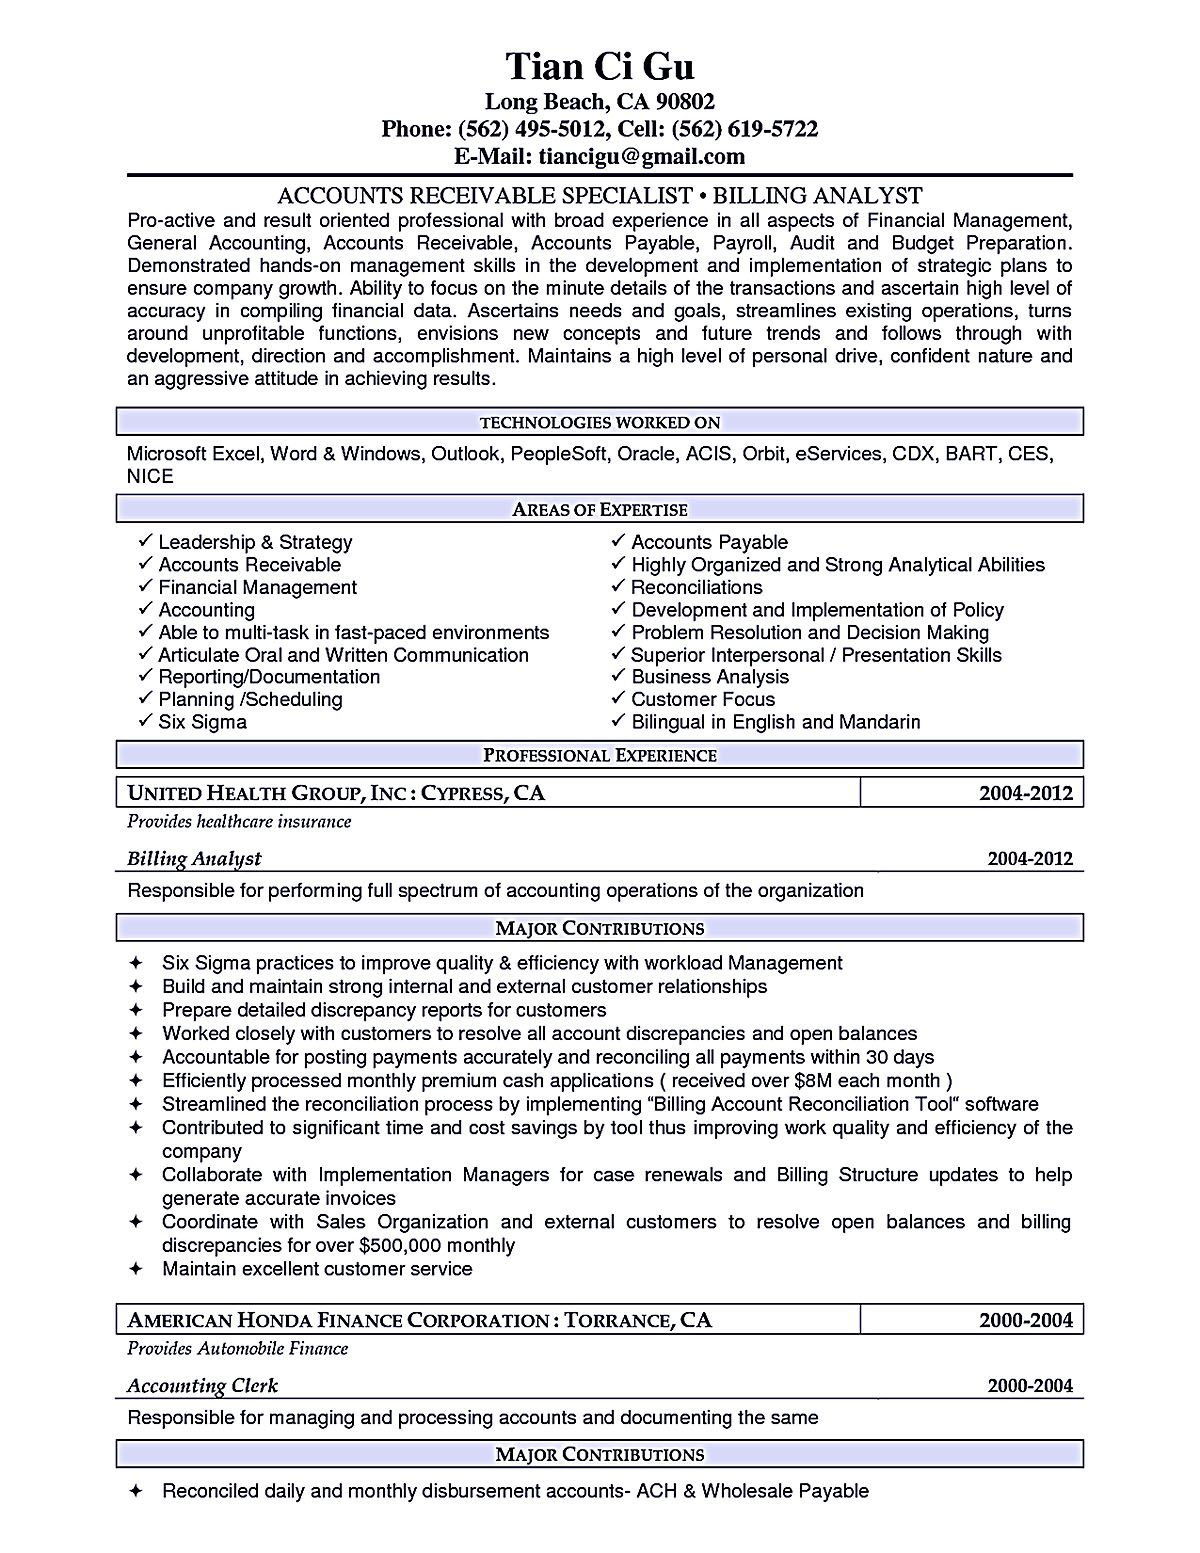 Accounting Clerk Resume Account Receivable Resume Shows Both Technical And Interpersonal